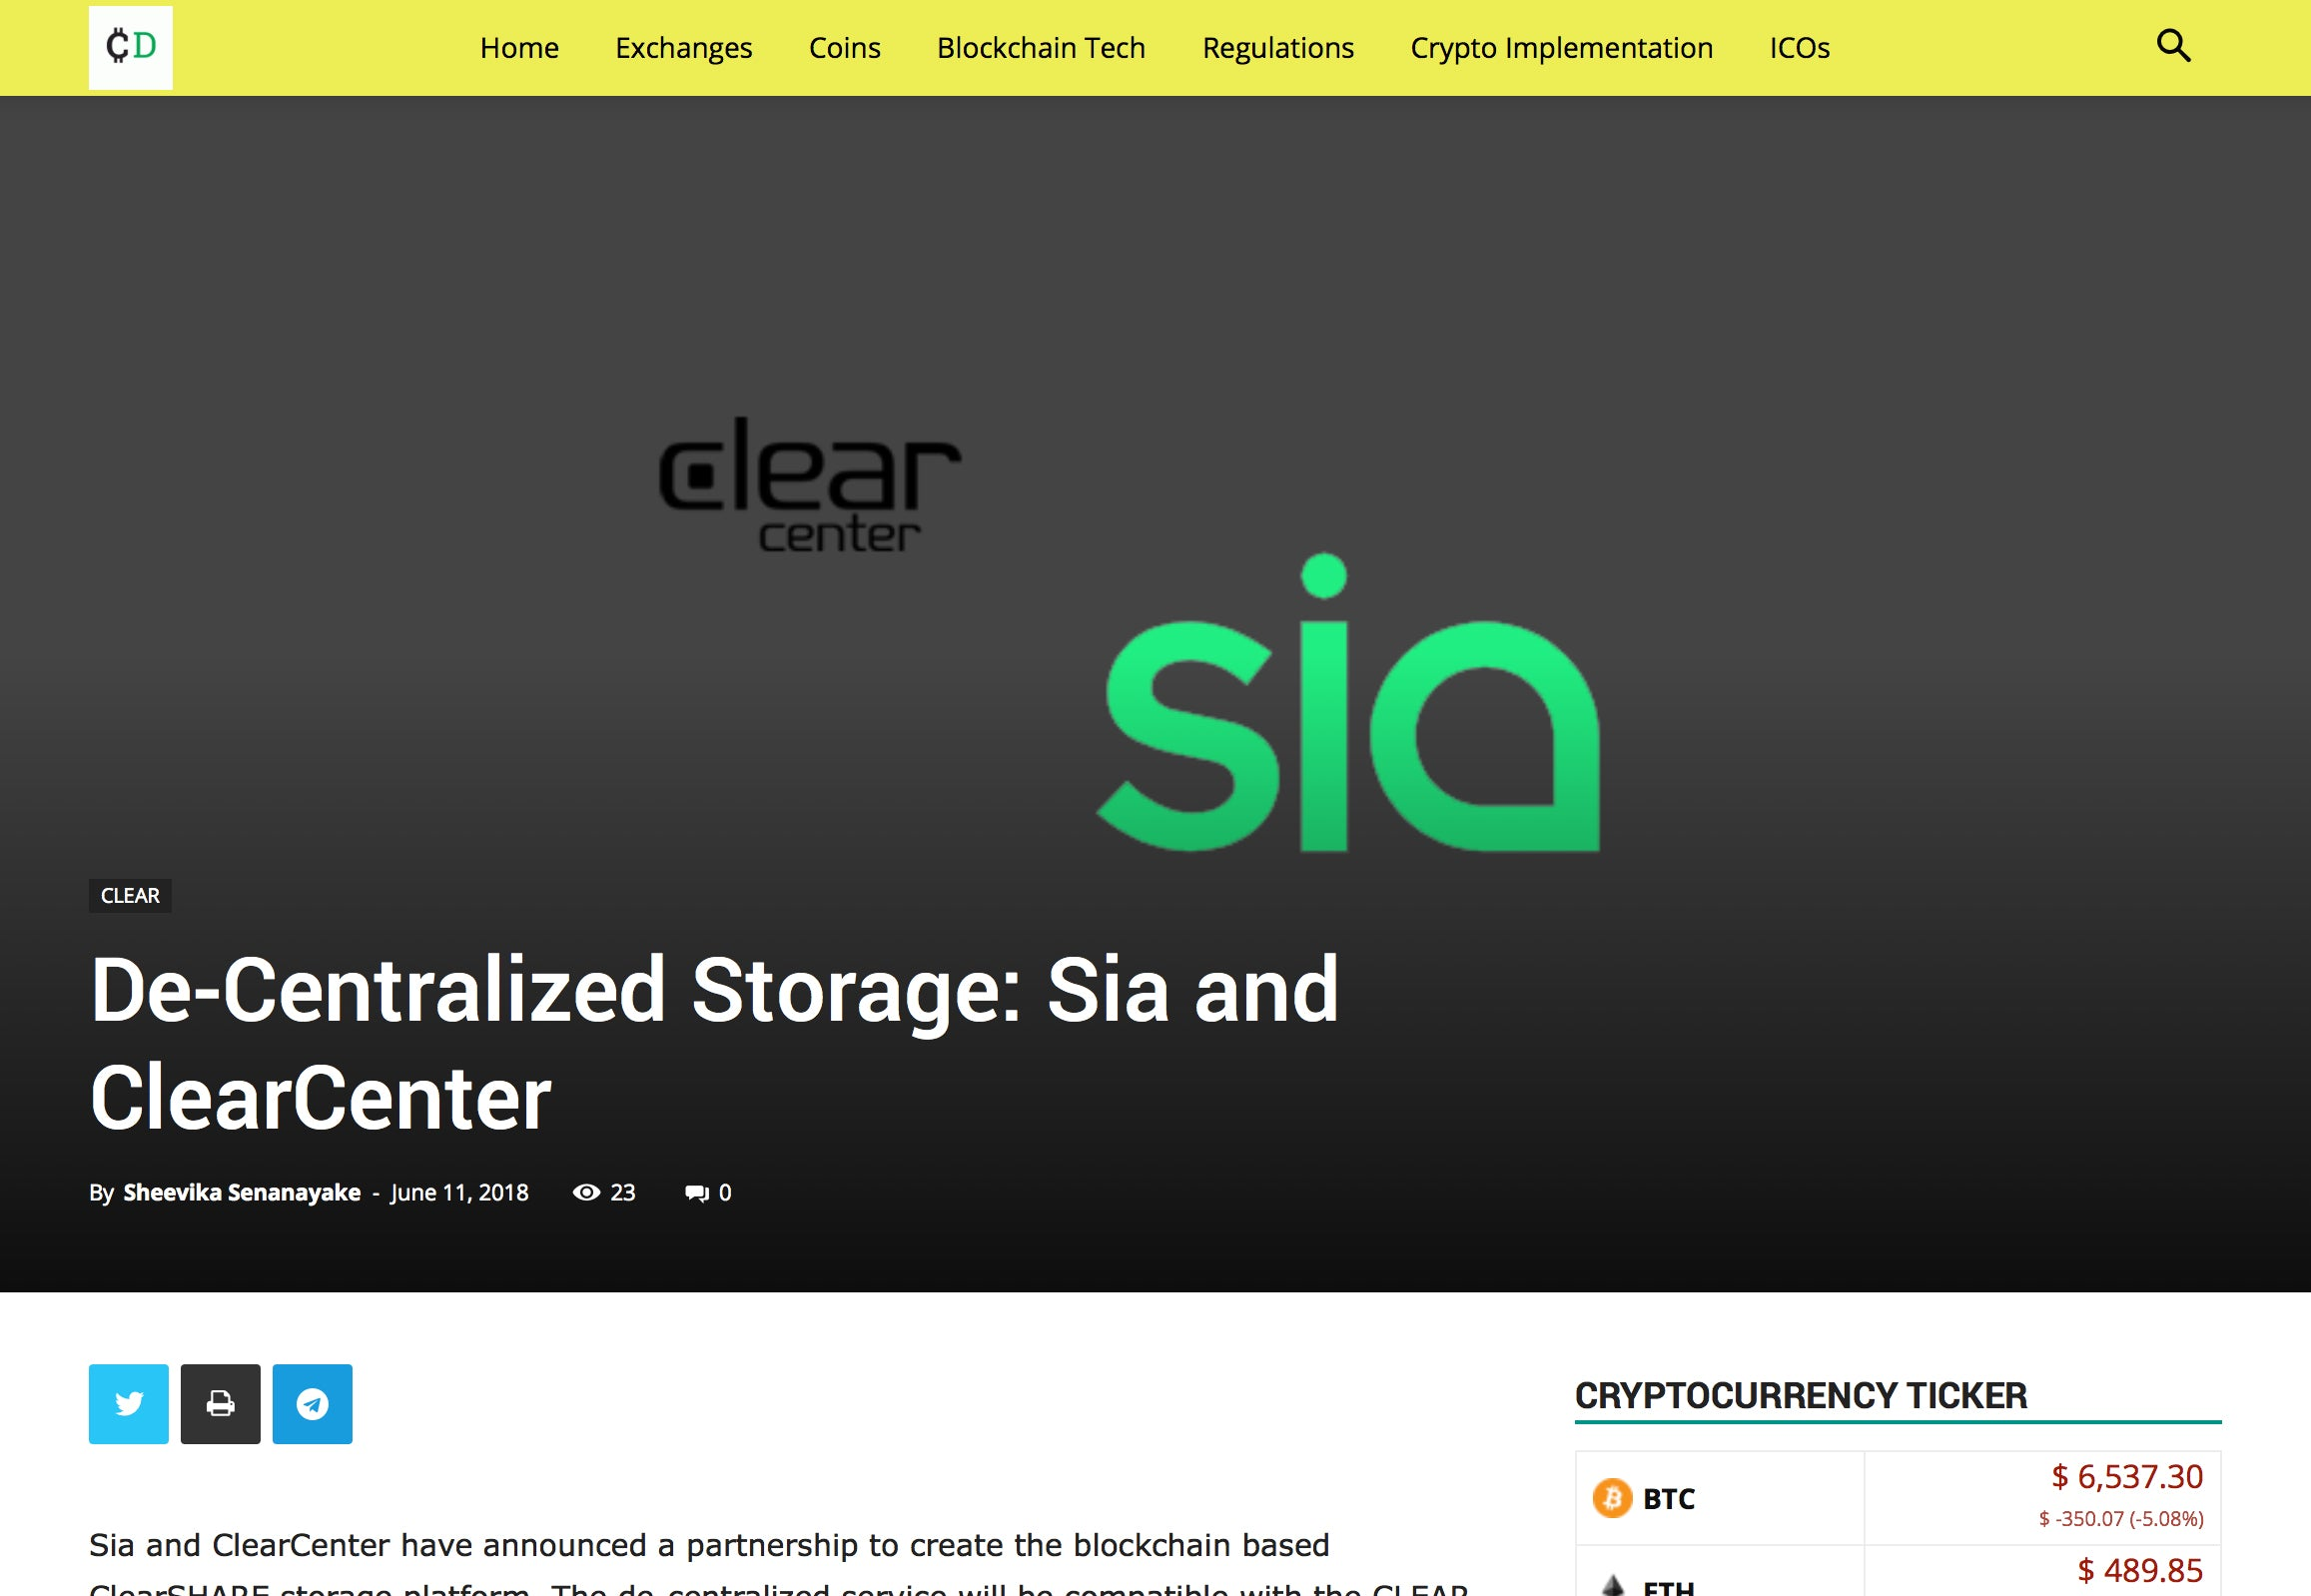 De-Centralized Storage: Sia and ClearCenter